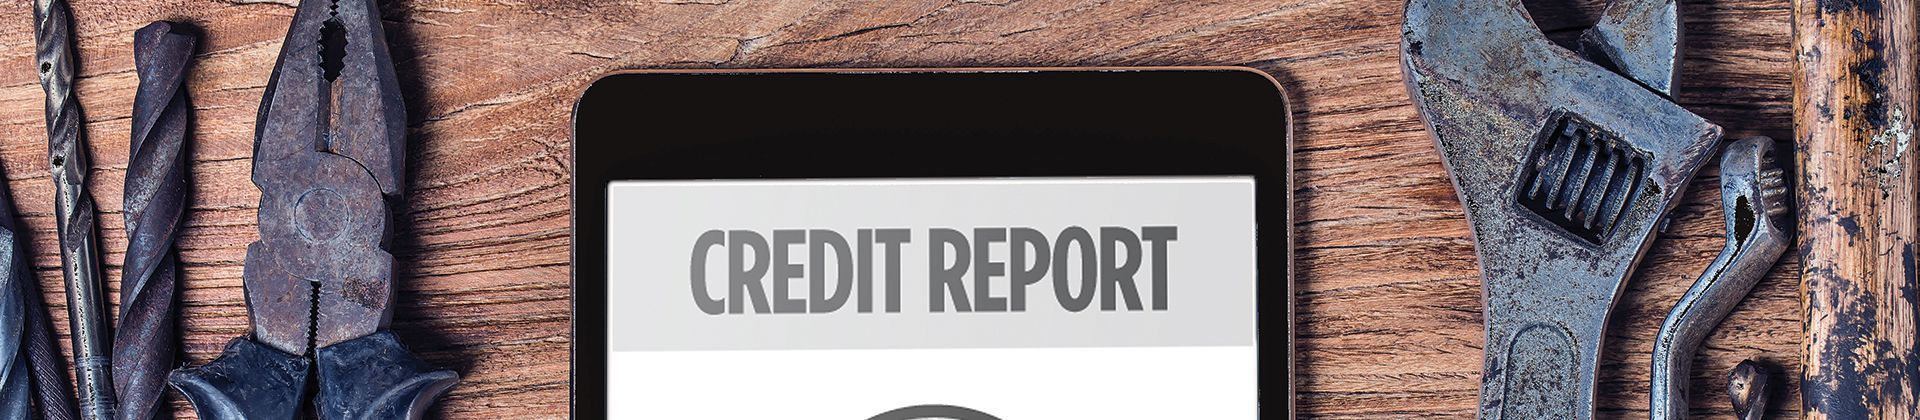 Why repair your credit report?